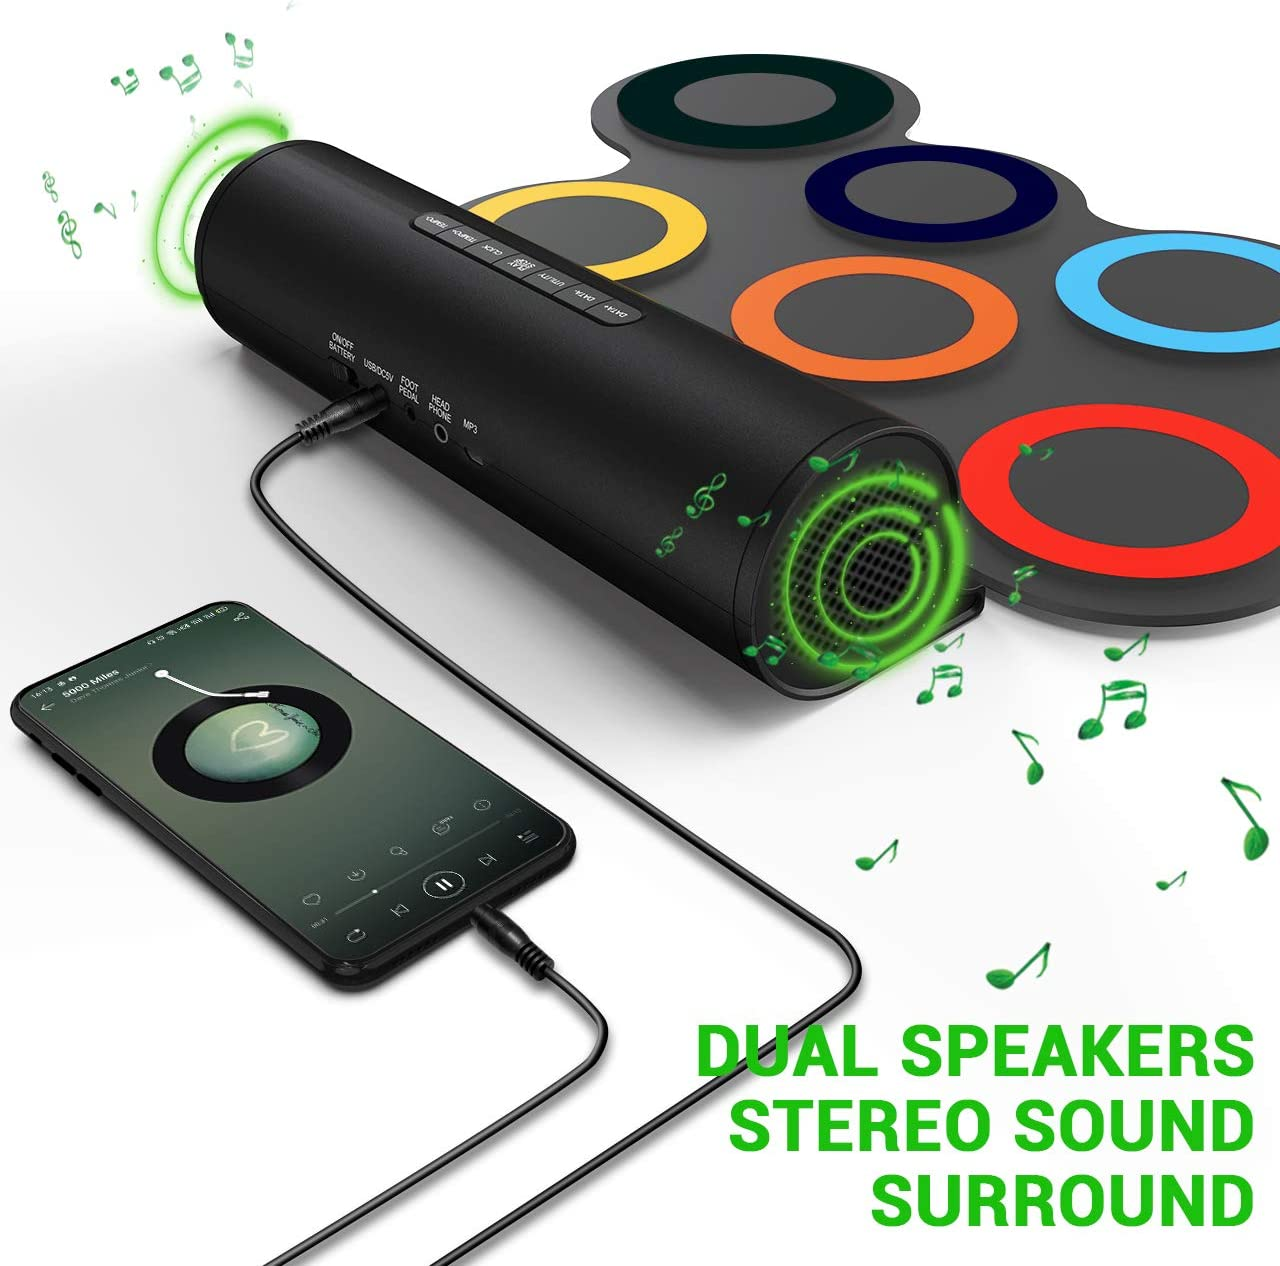 Paxcess 7 Pads dual speakers